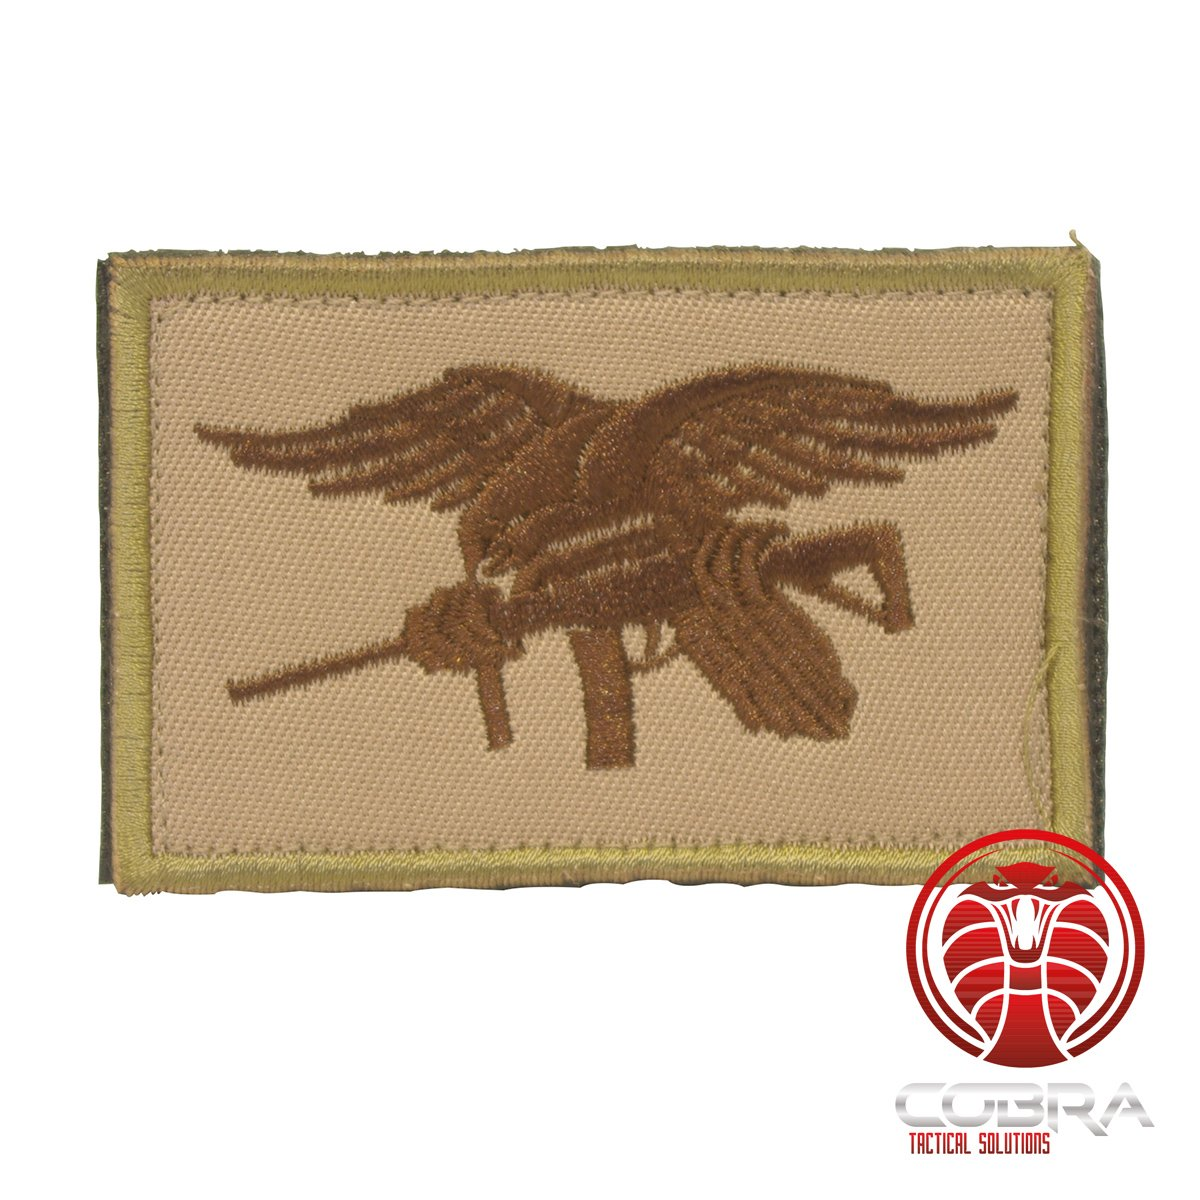 Cobra Tactical Solutions US Navy Seals Parche Bordado Militar tactico Velcro Airsoft